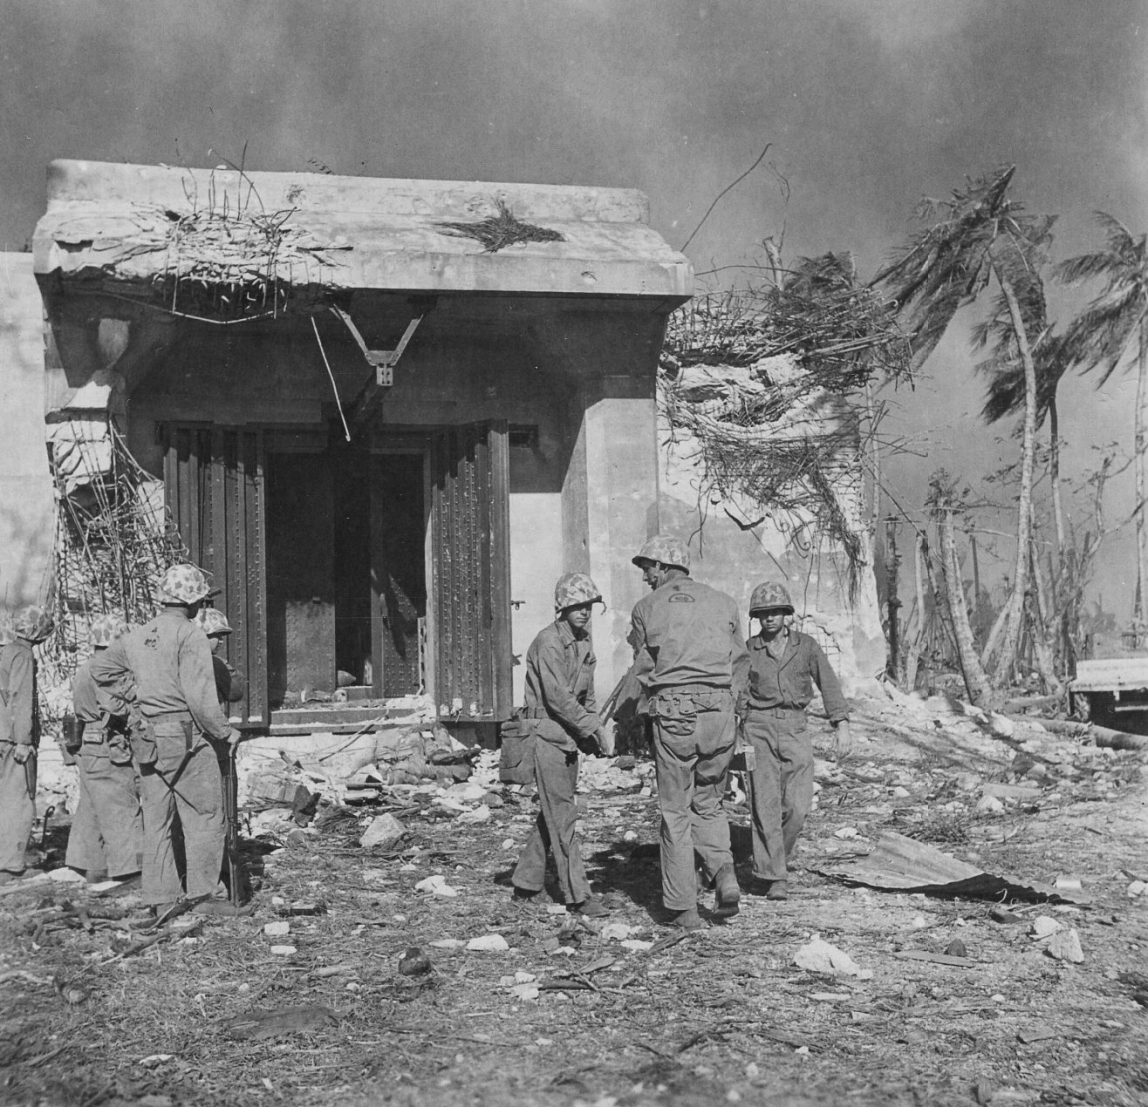 The blockhouse is cleared. Marines discuss their next move. Note the nose of an aerial bomb visible in the open door.